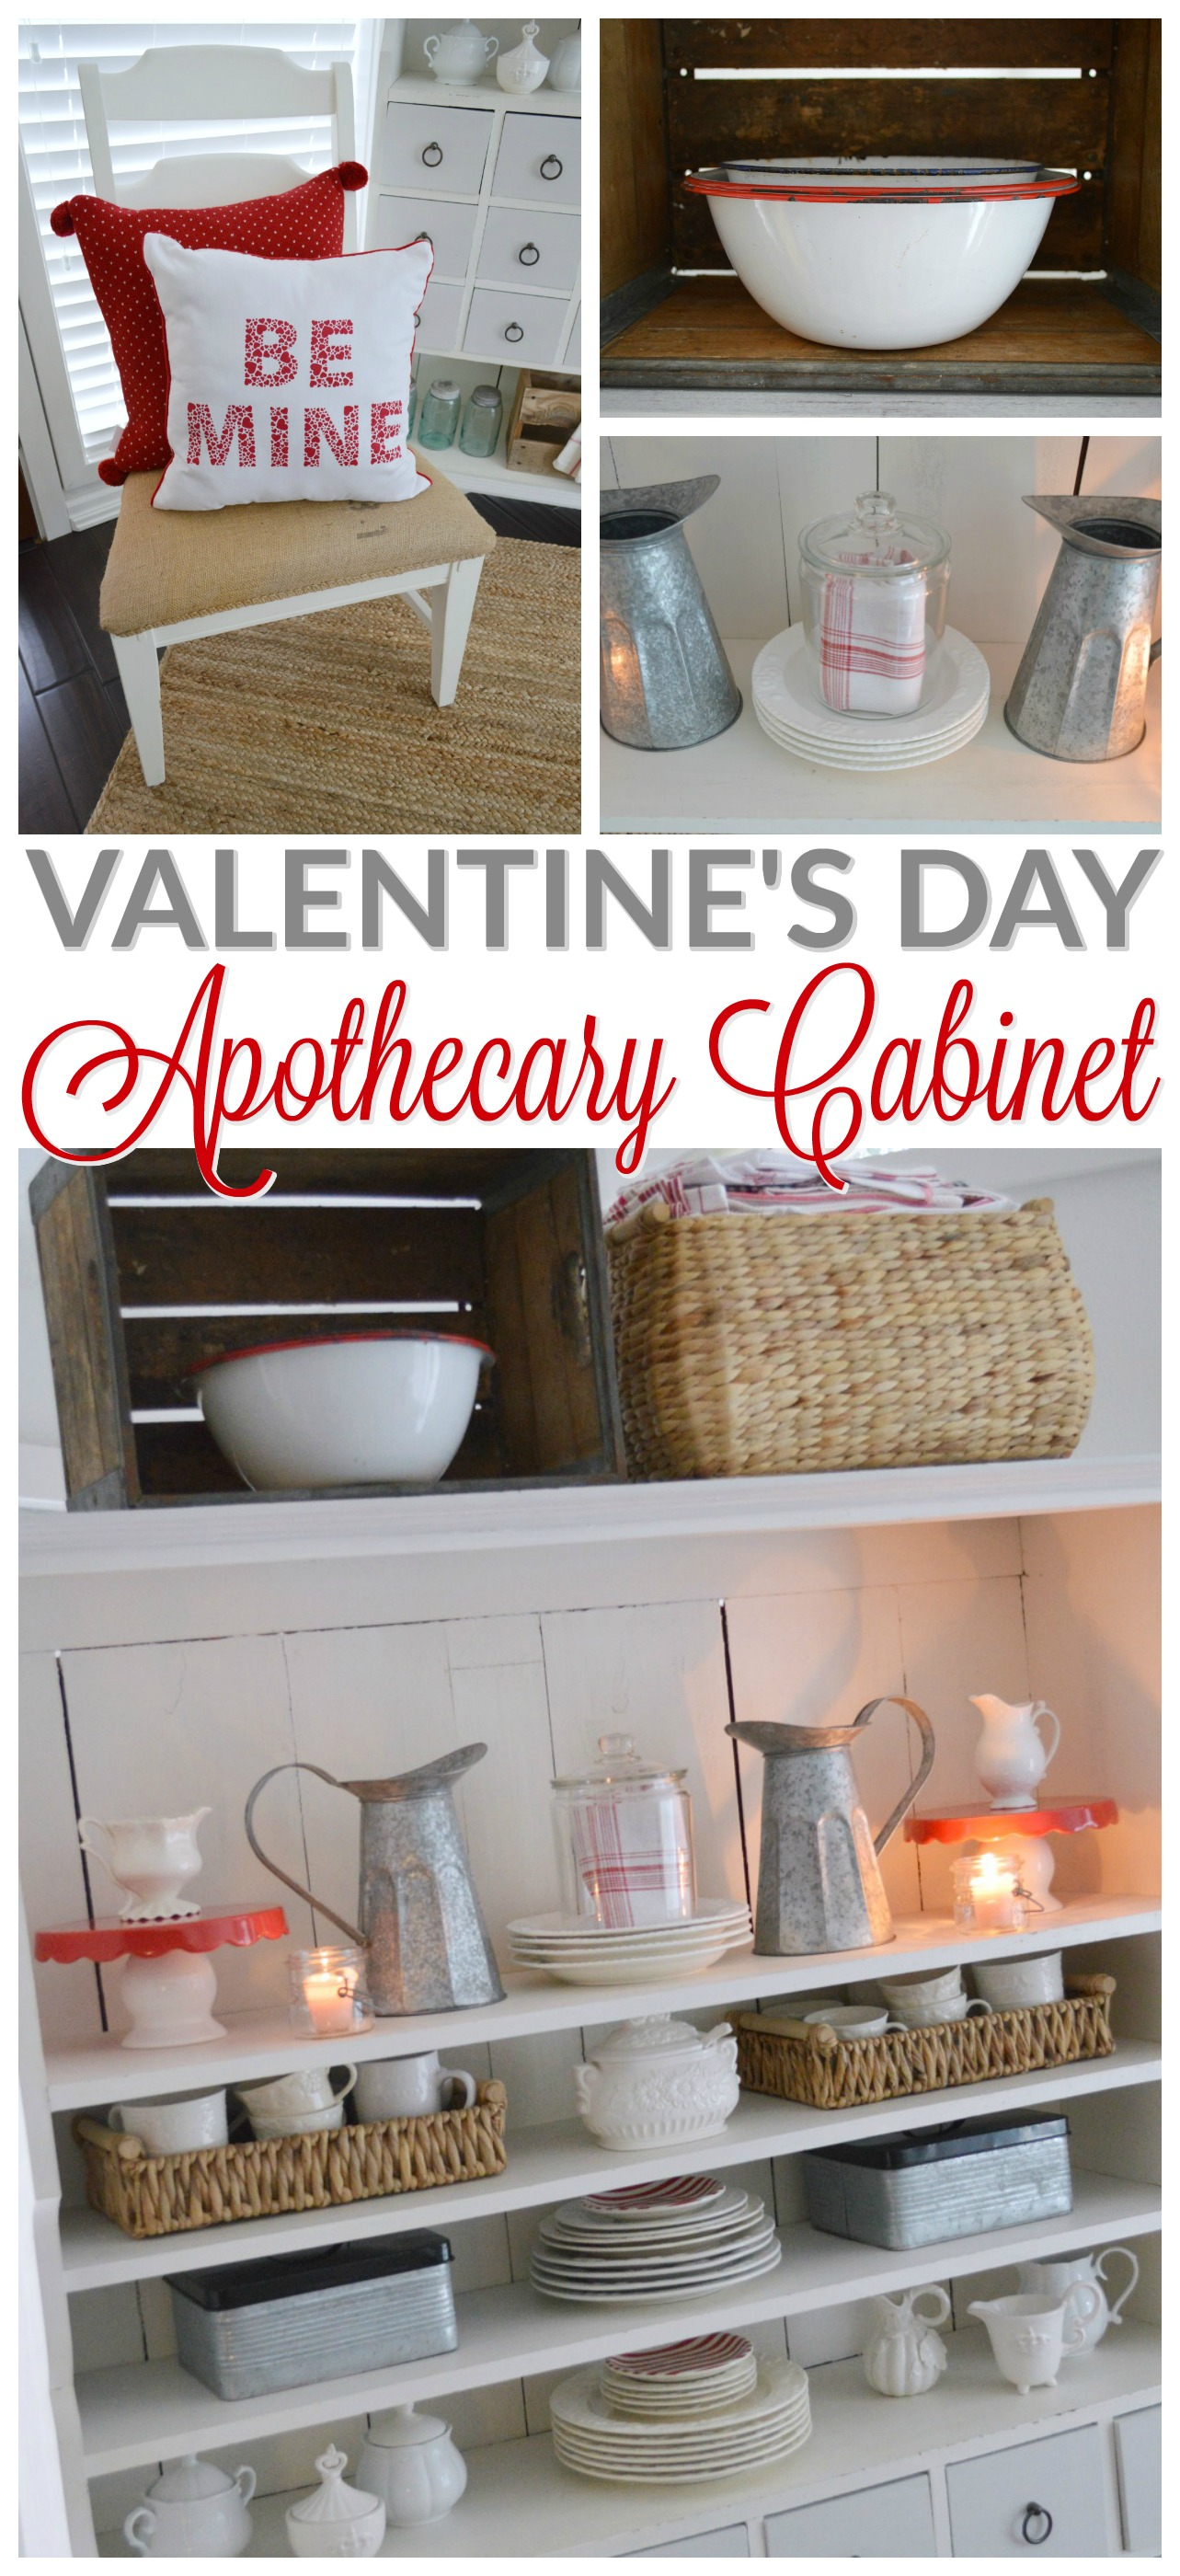 Valentine's Day Decorating at foxhollowcottage.com - farm style apothecary cabinet - Fox Hollow Cottage